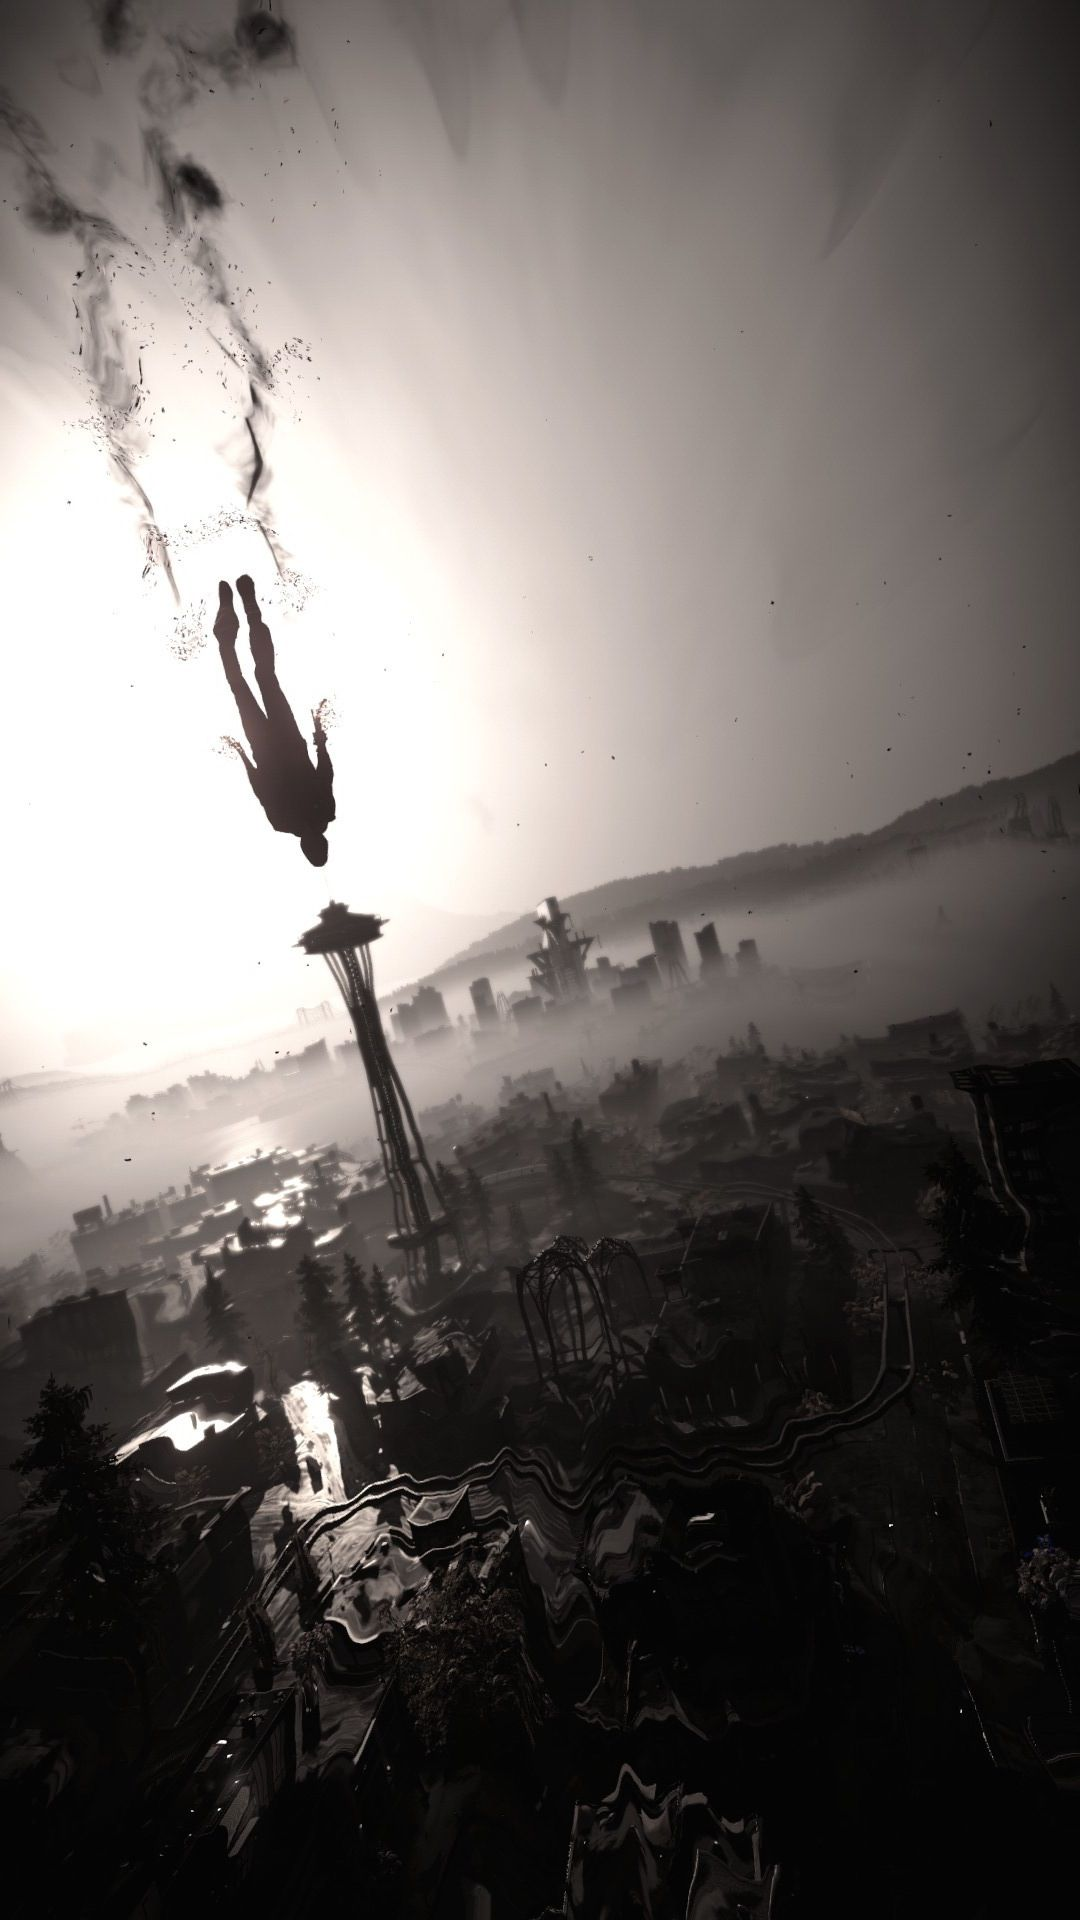 The Ps4 Is A Next Gen Camera In Infamous Second Son Infamous